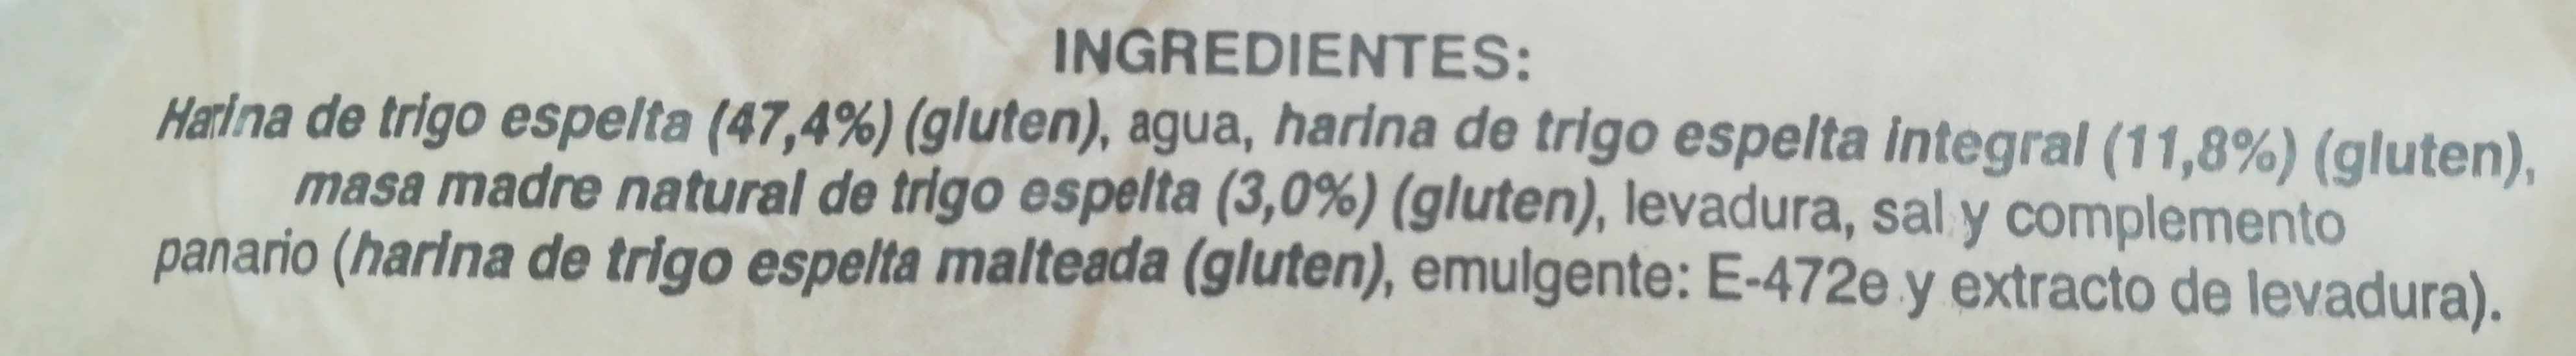 Pan de trigo espelta 100% con masa madre - Ingredients